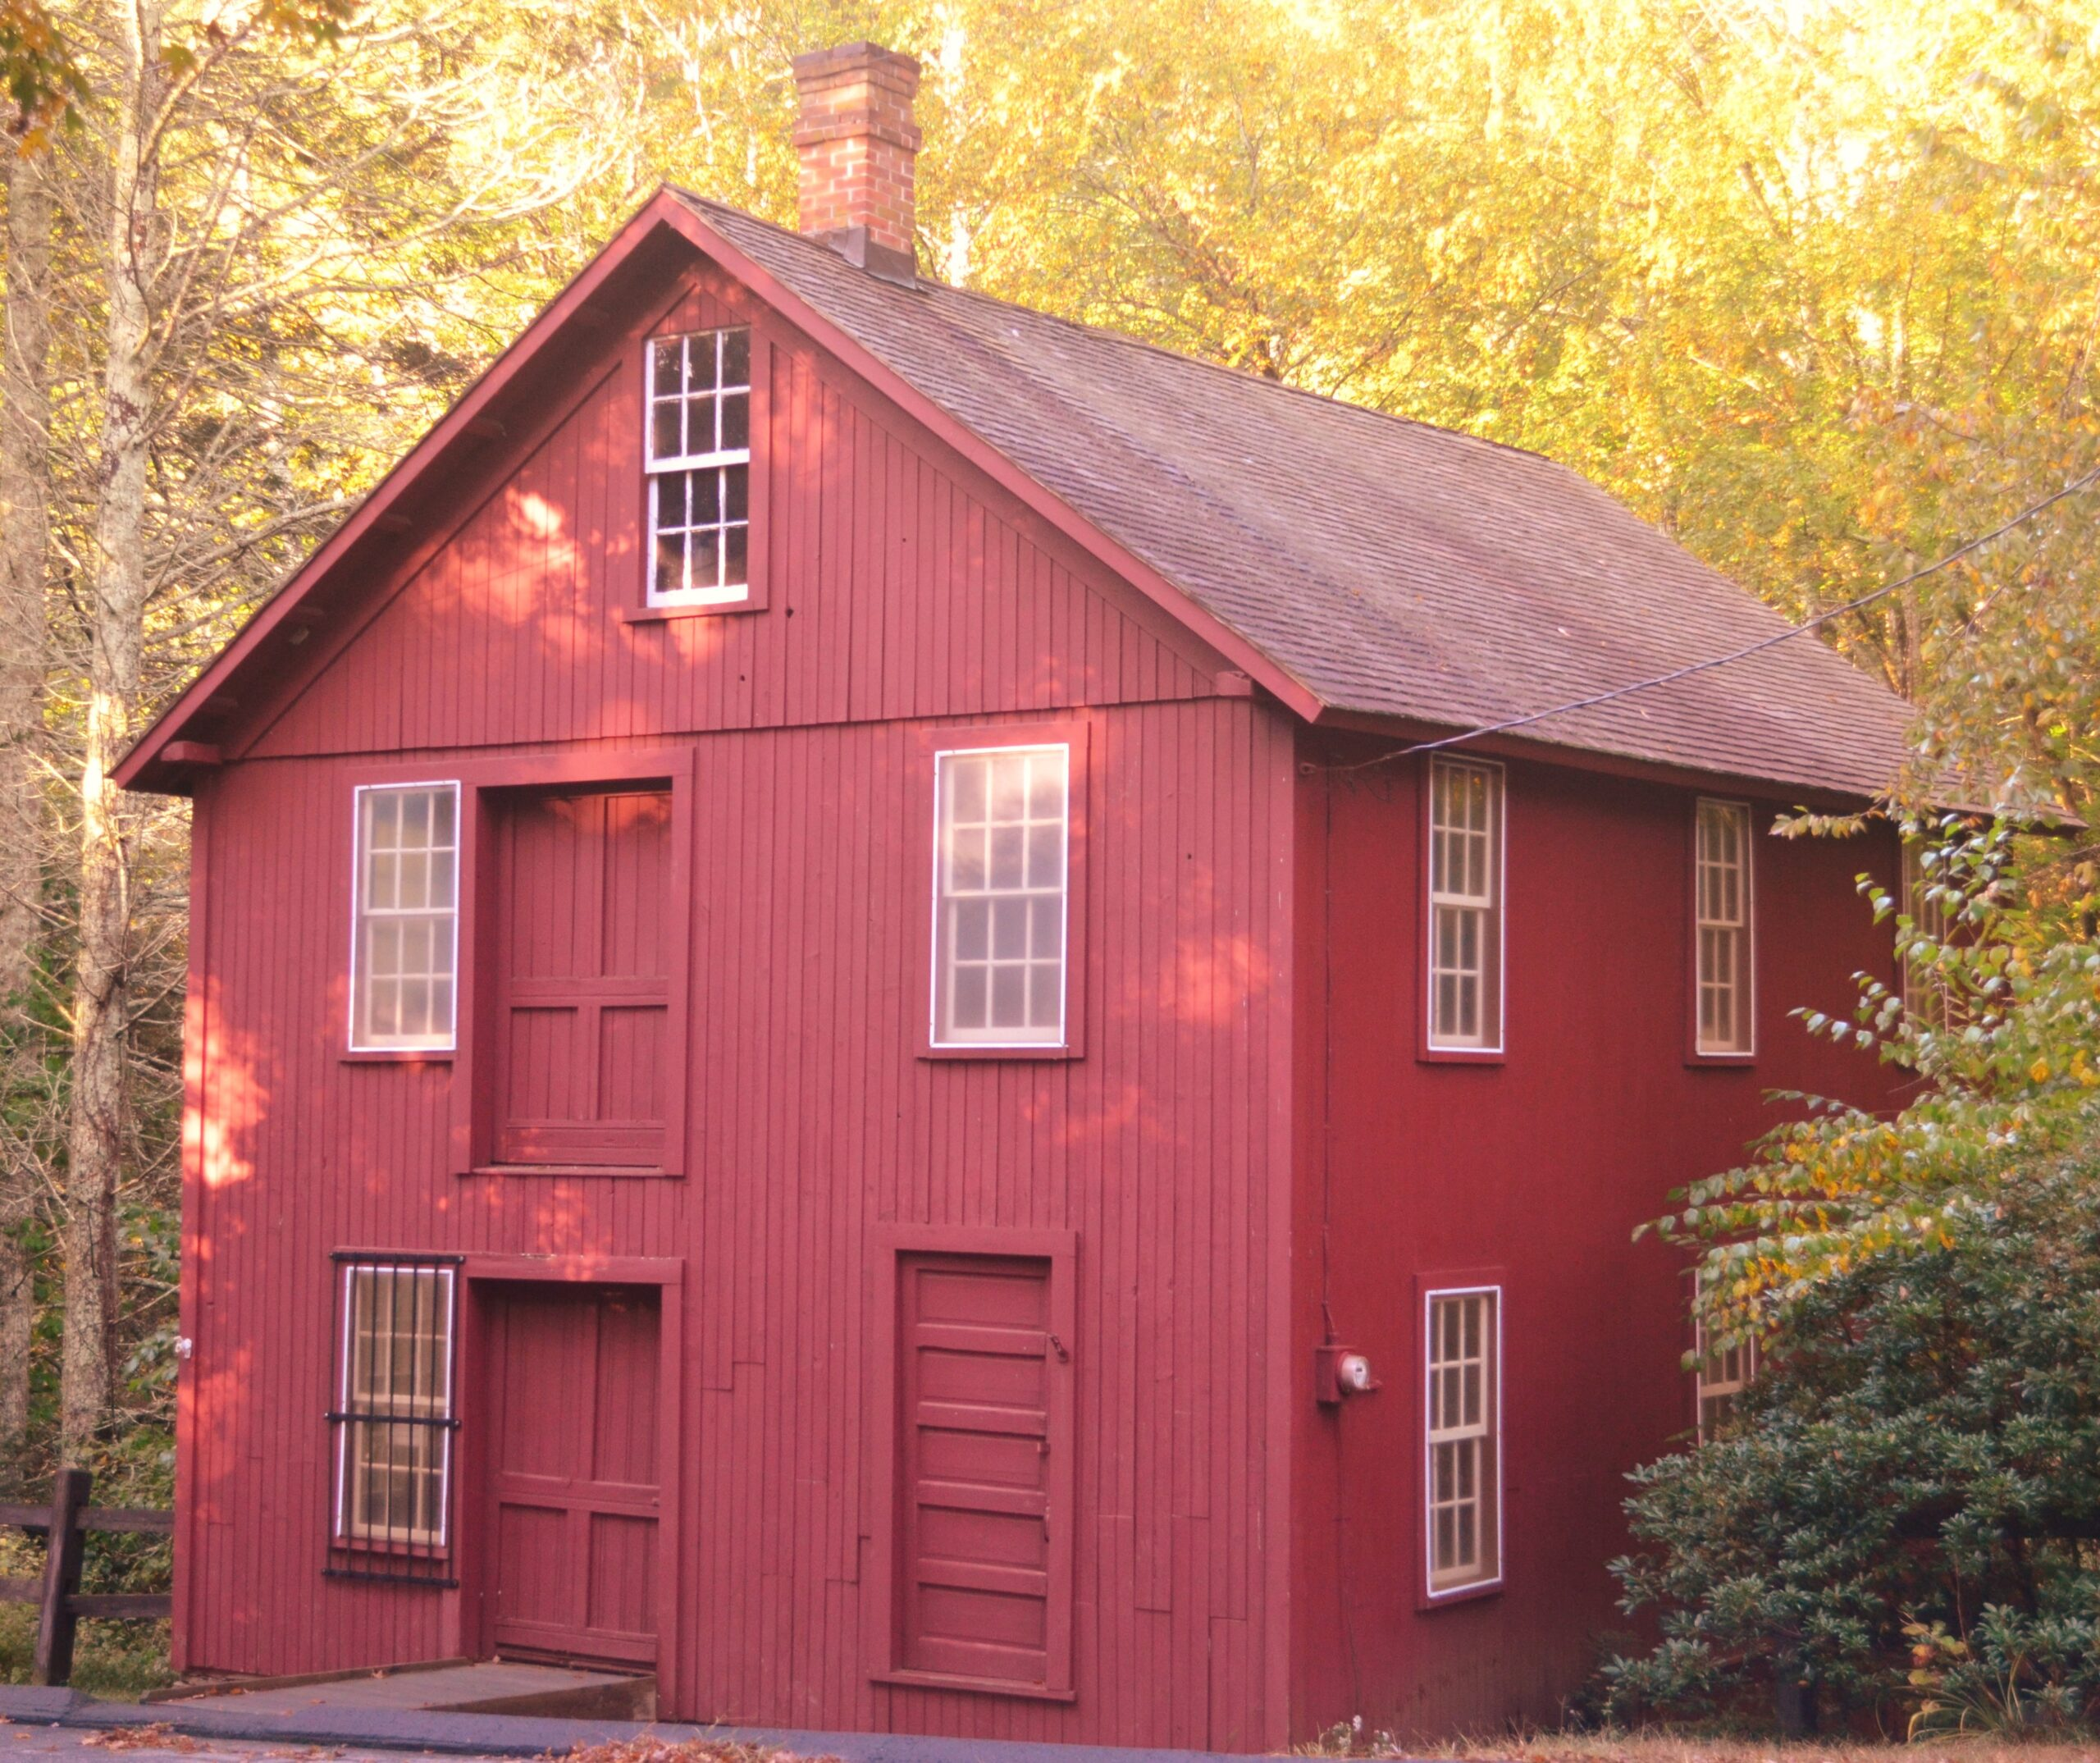 Grist Mill Photo September 2019